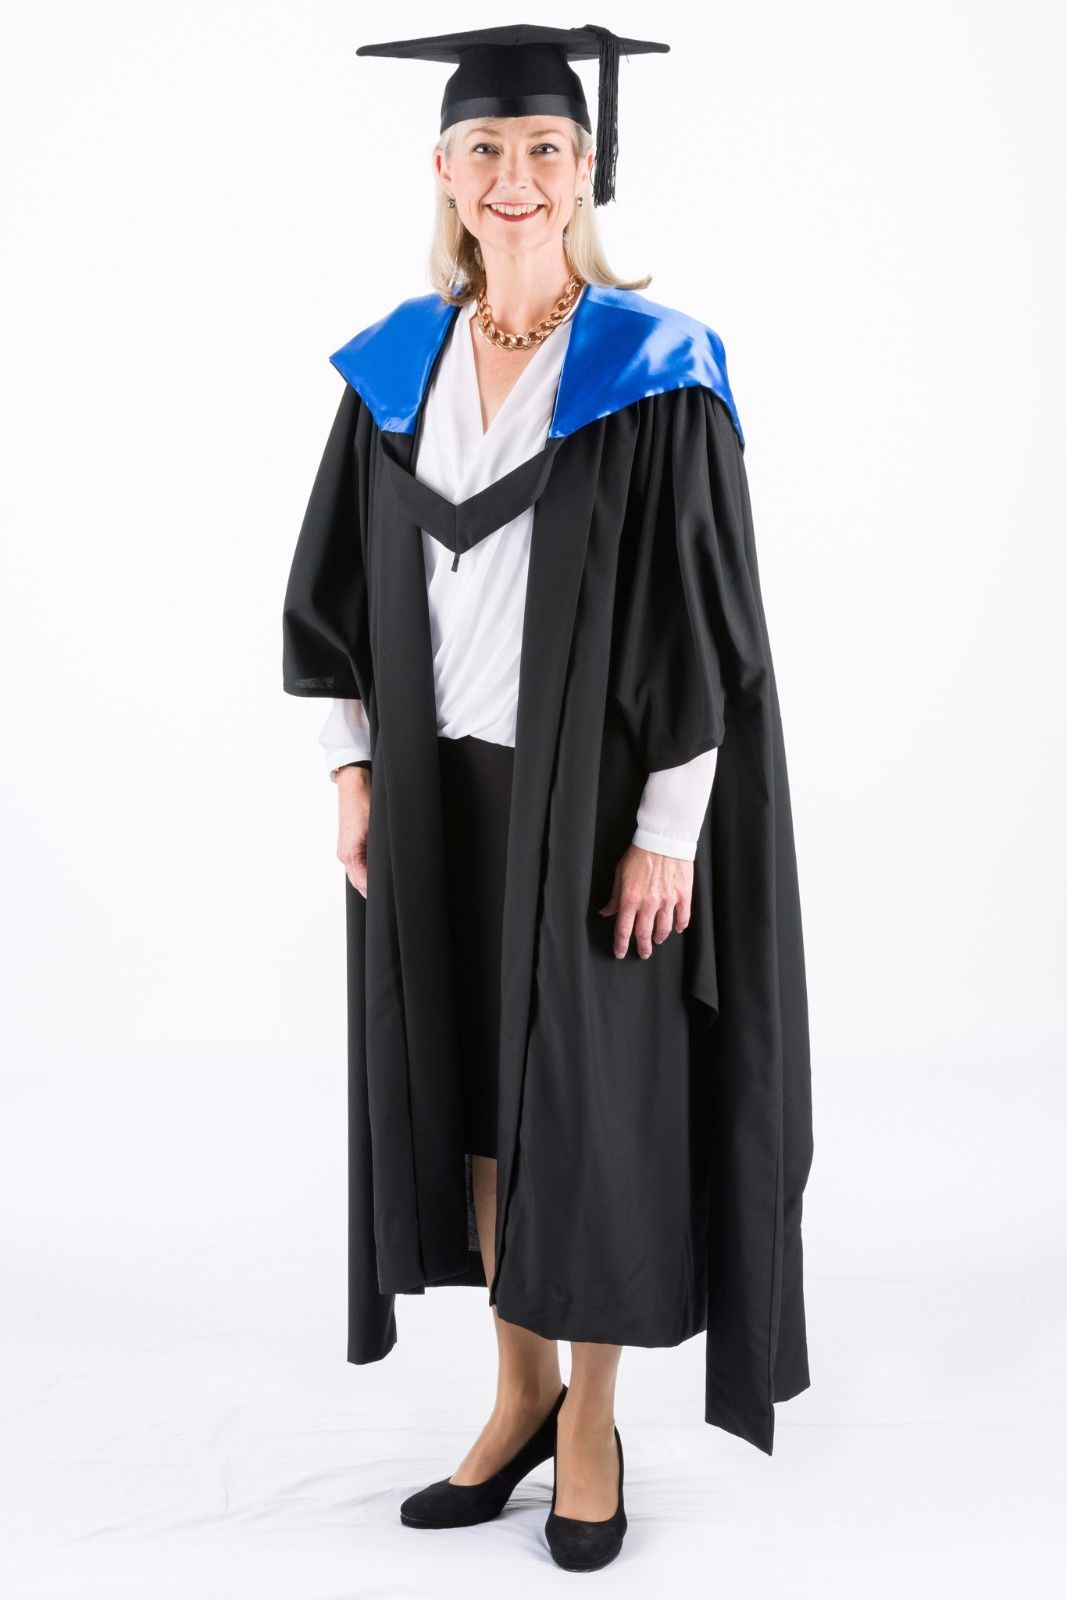 QUT Master of Business Graduation Hood Blue – The Gown Chick